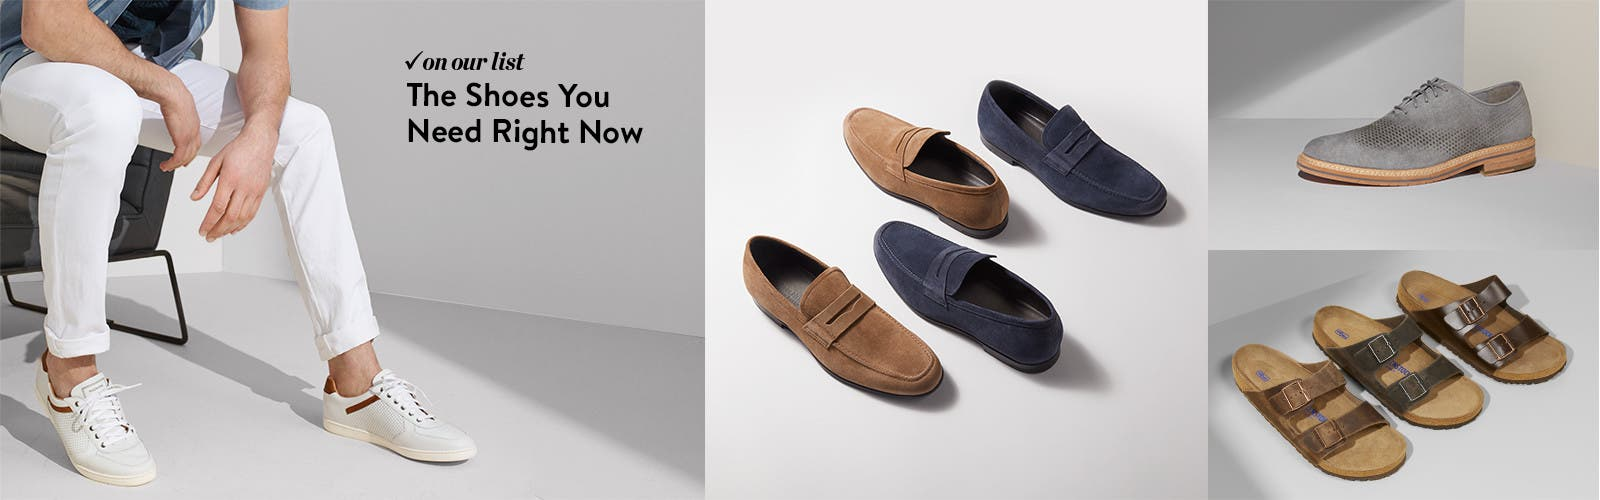 The shoes you need right now.